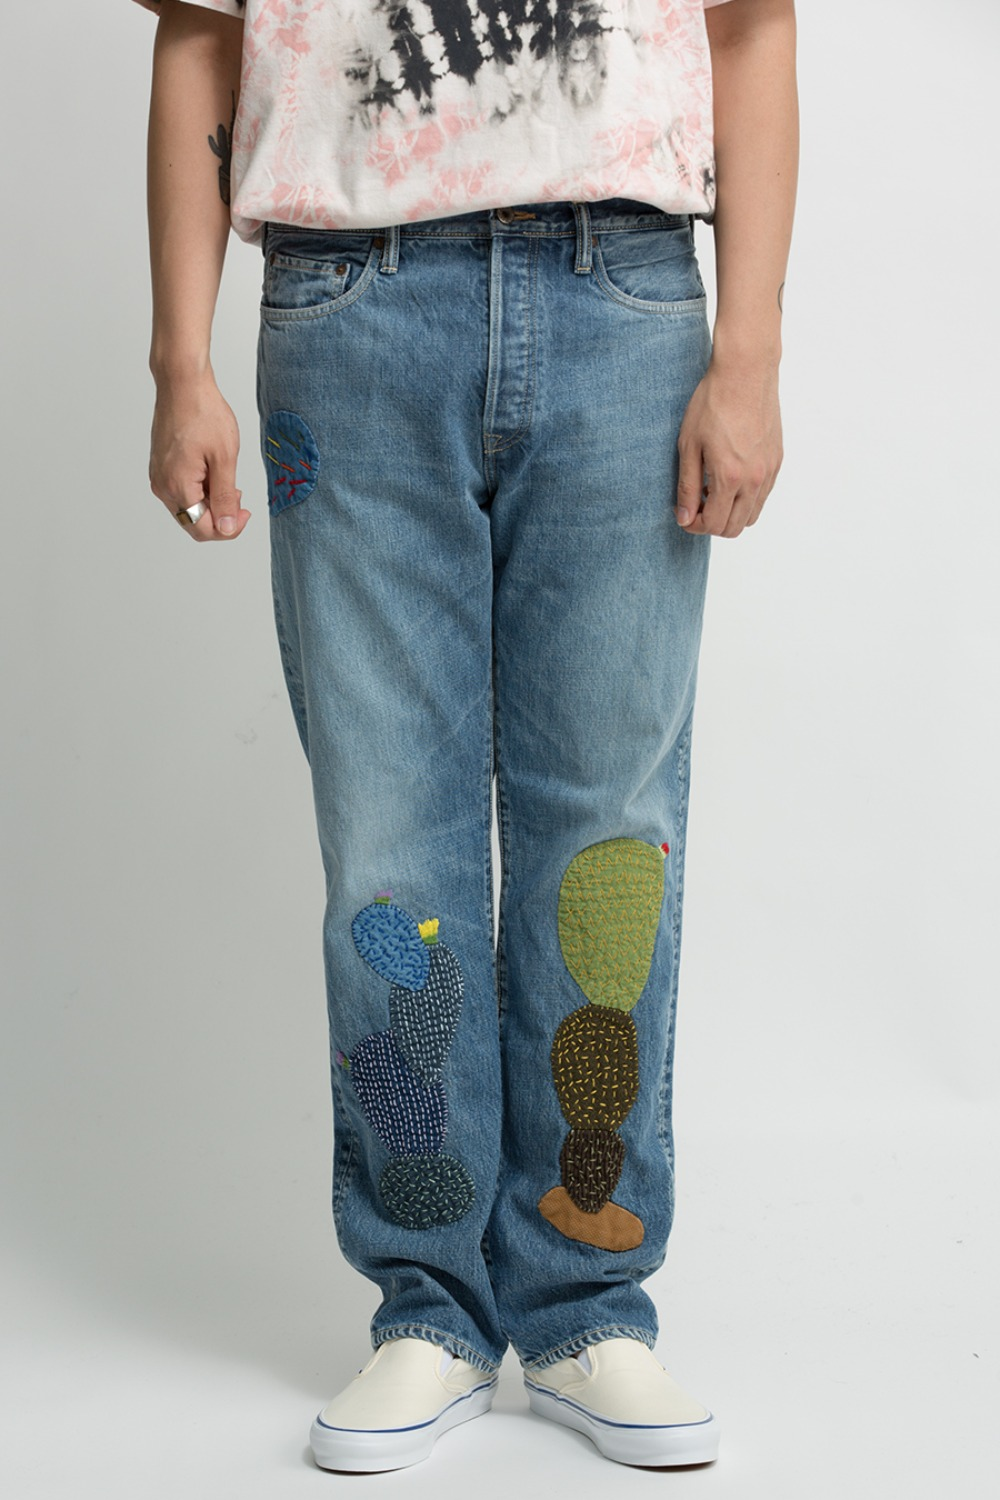 14OZ DENIM 5P MONKEY CISCO(CACTUS EMBROIDERY)